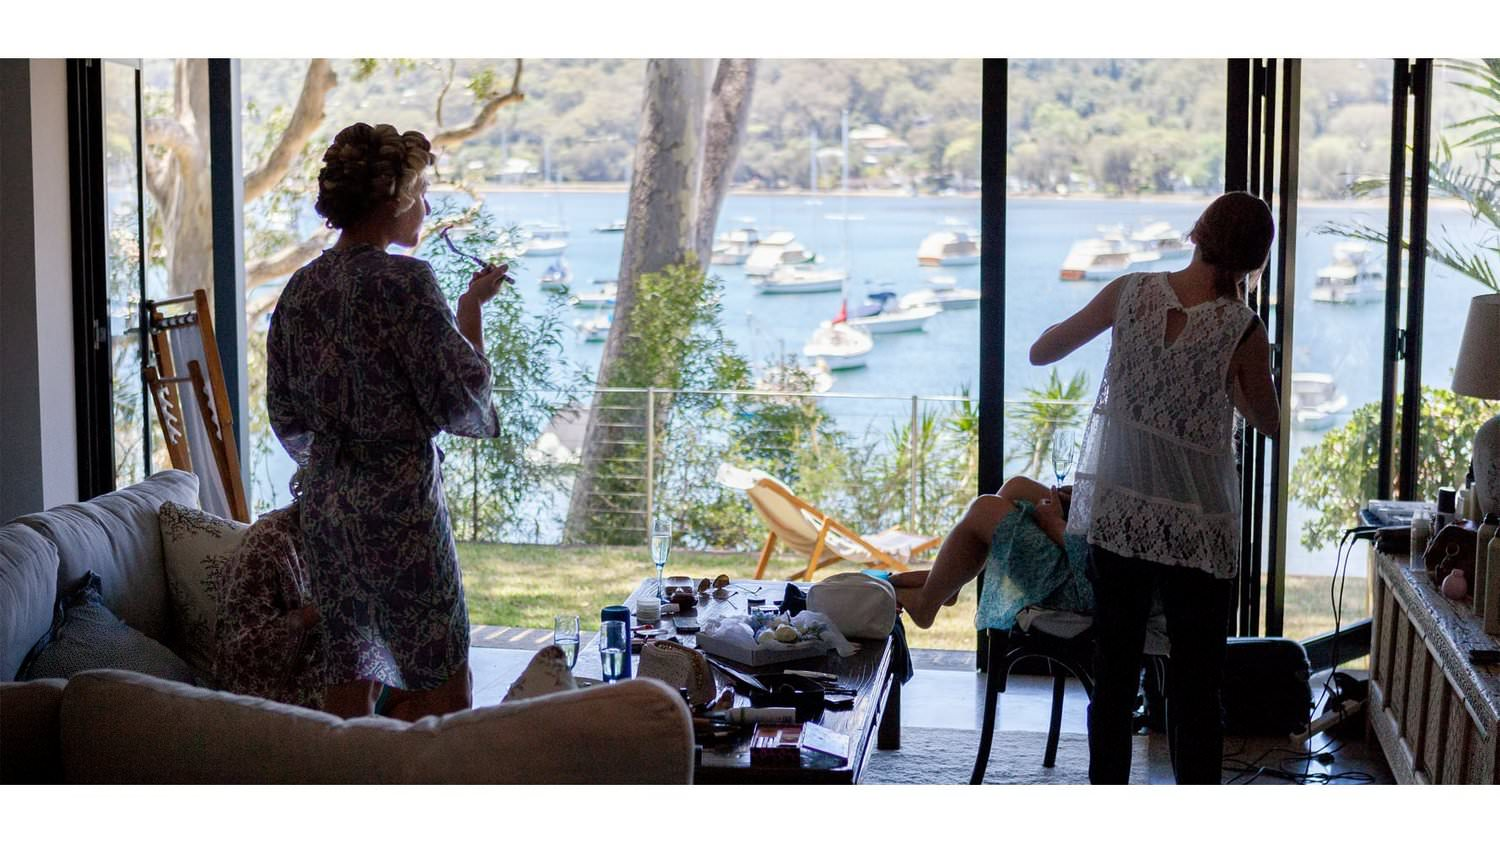 Sydney Waterside Wedding - It's not often you get to say you're 'living the dream', but when it comes to your big day, it may be easier to arrange than you think…